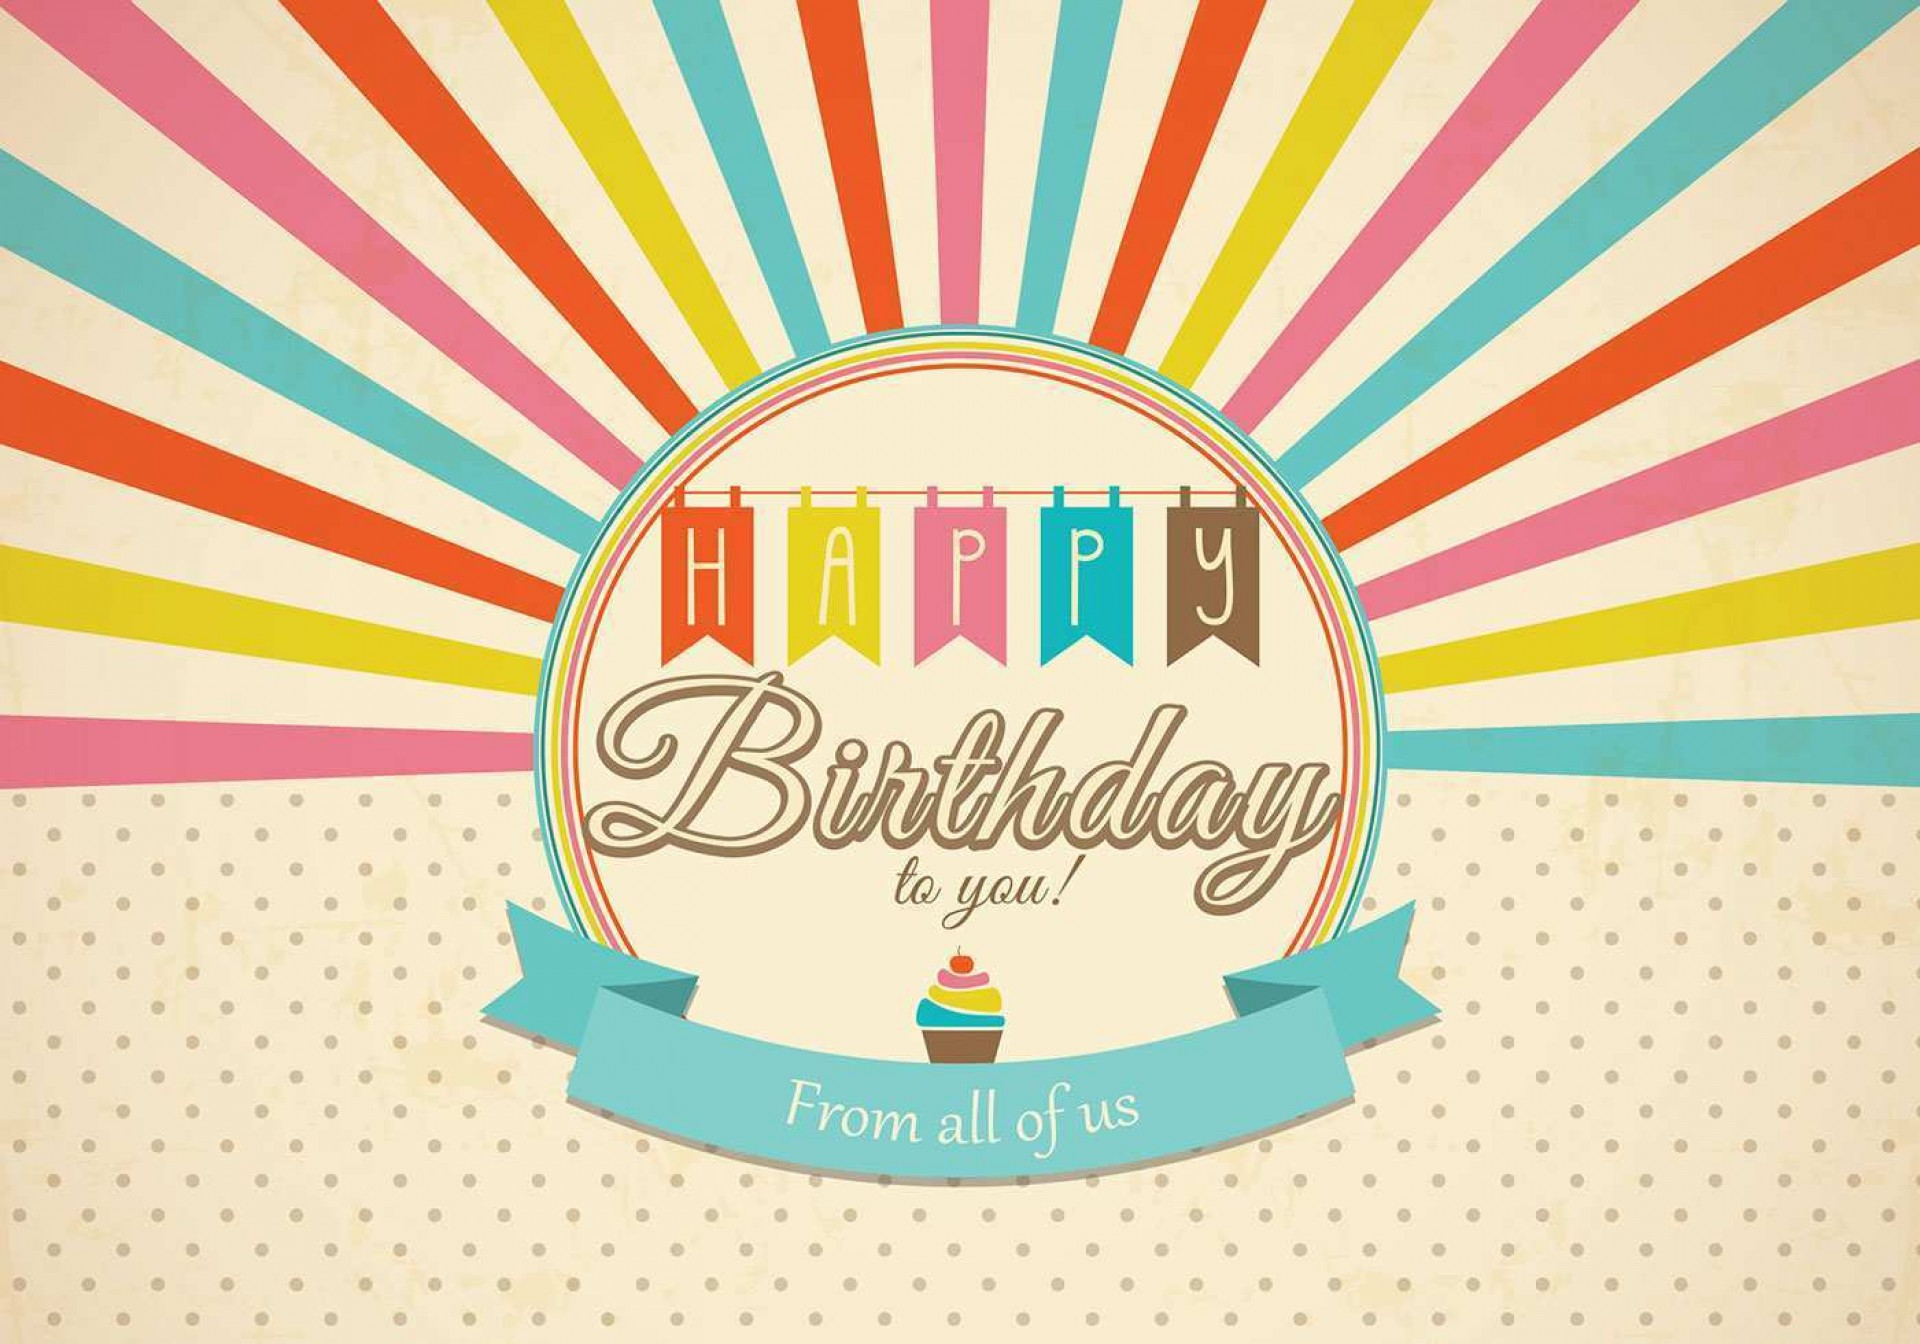 003 Simple Birthday Card Template Photoshop Idea  Greeting Format 4x6 Free1920